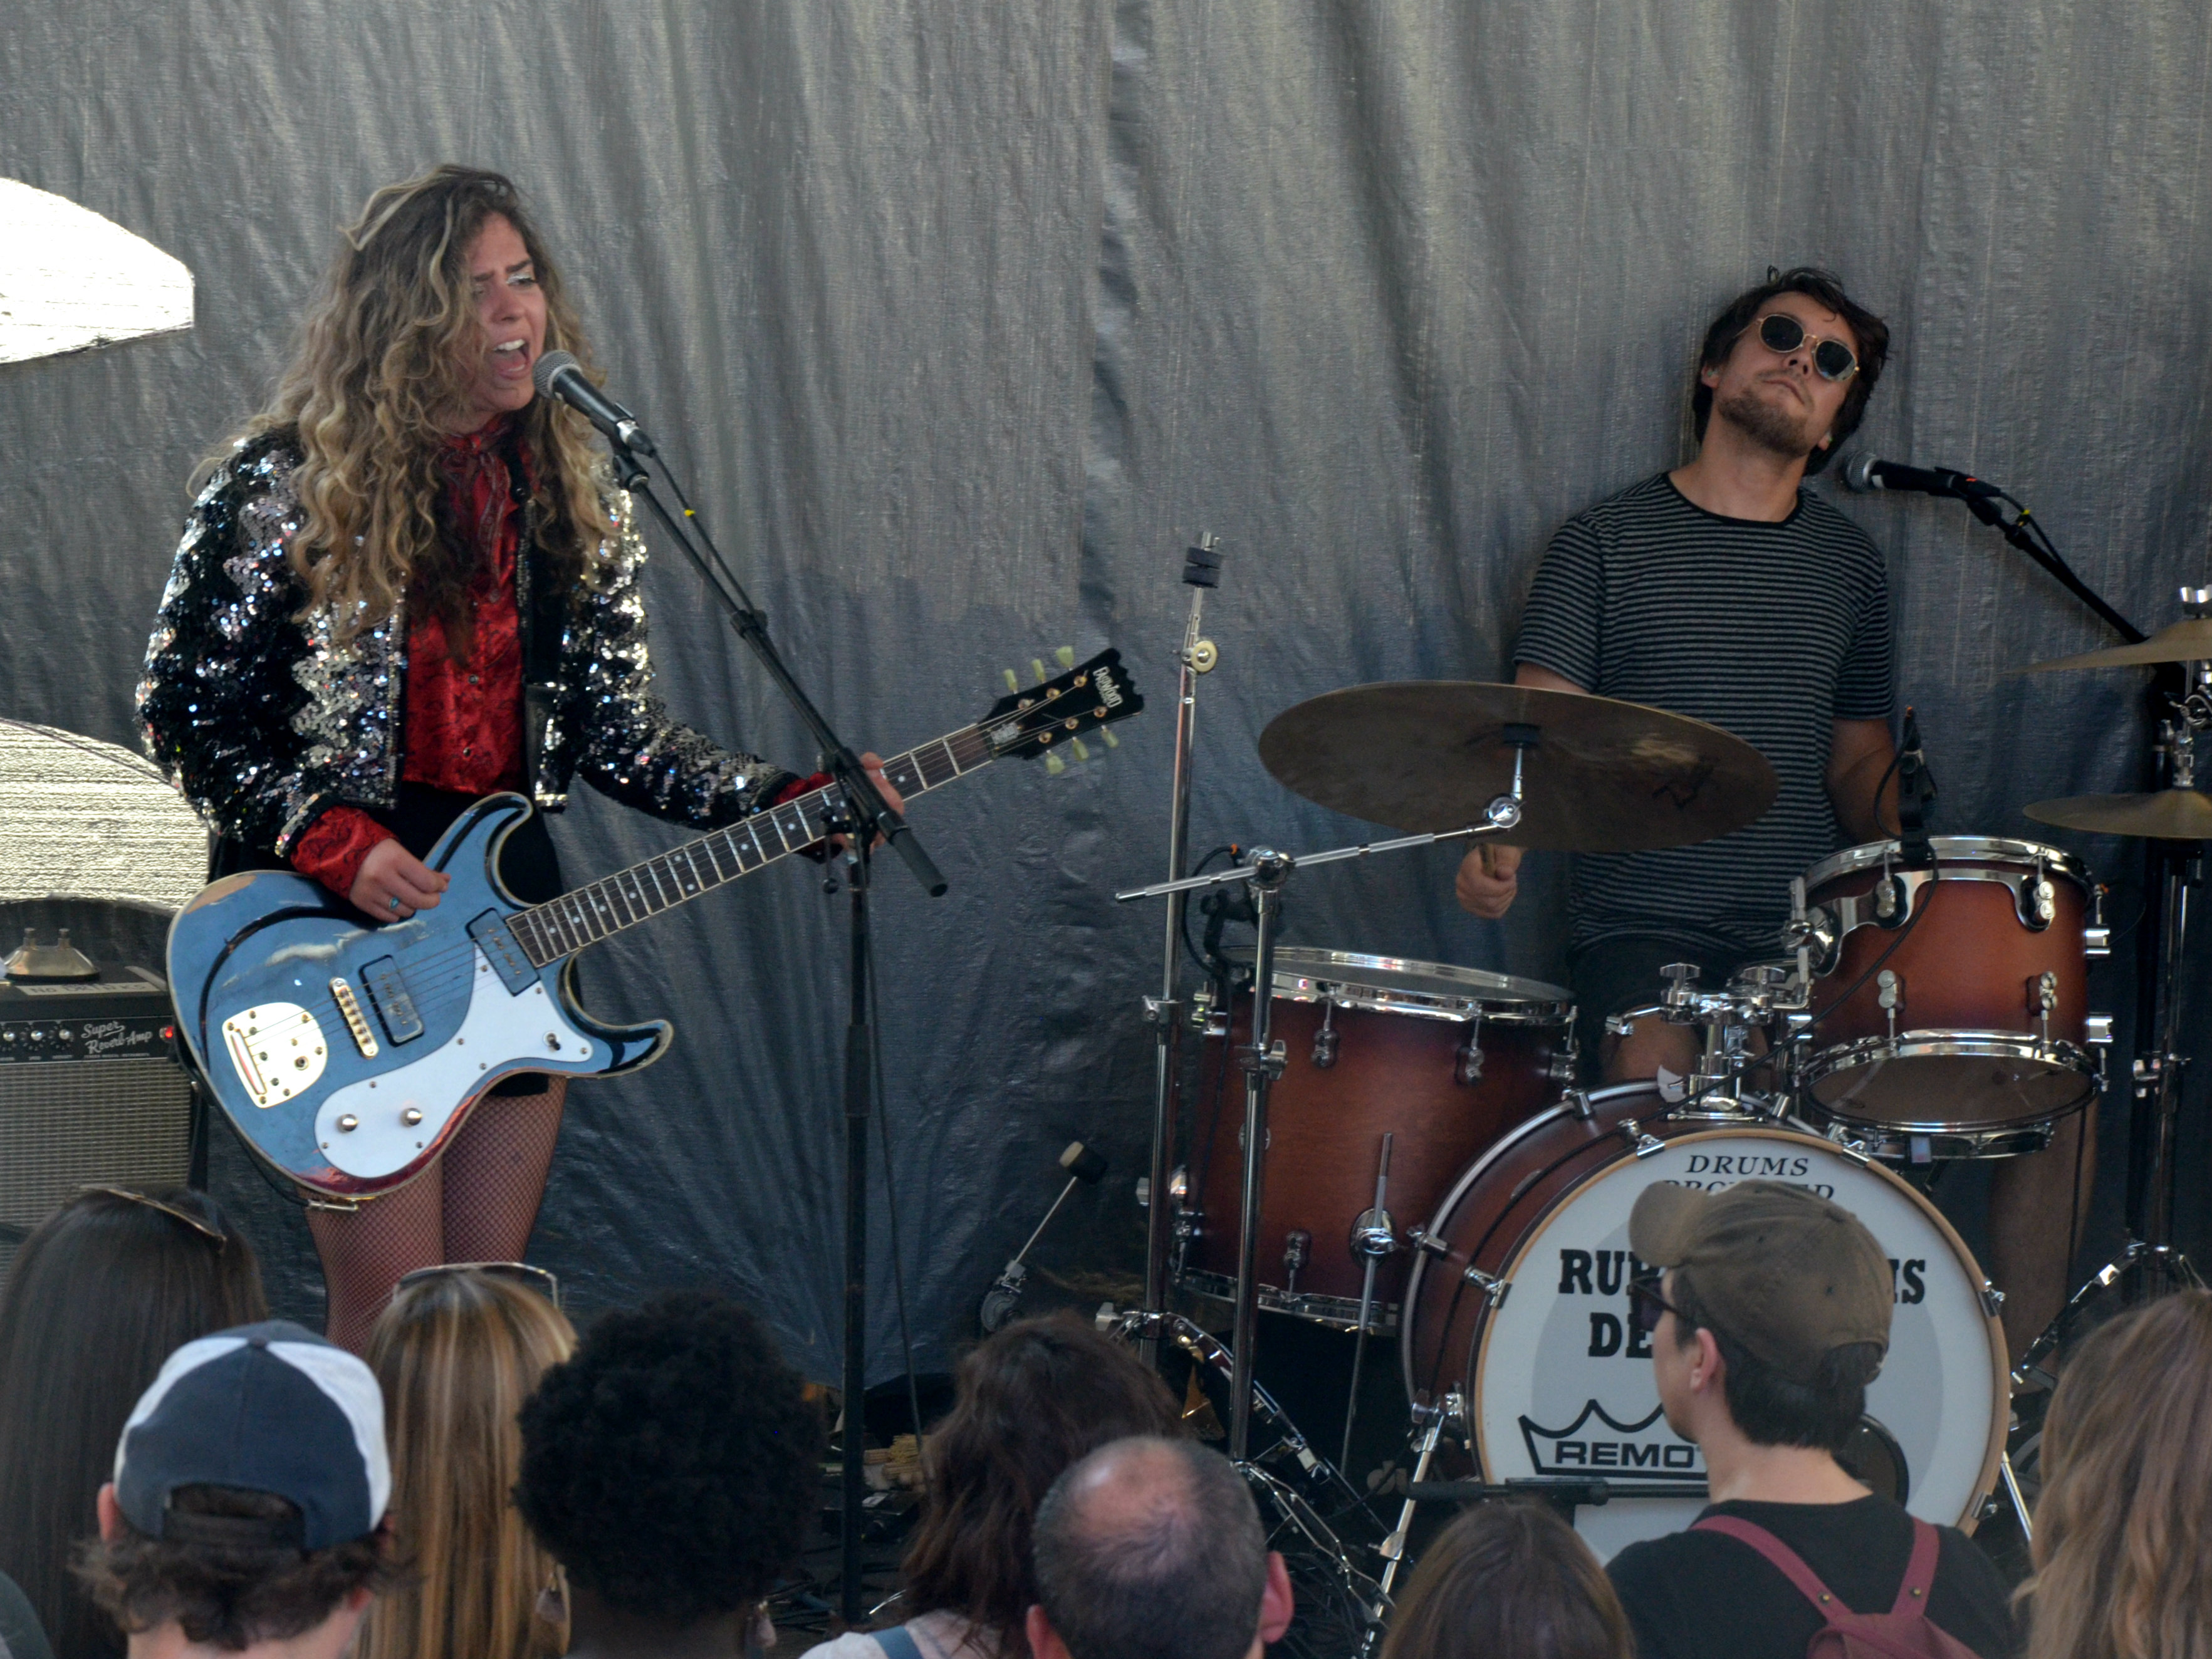 Photo: The Velveteers at Westword Music Showcase 2018